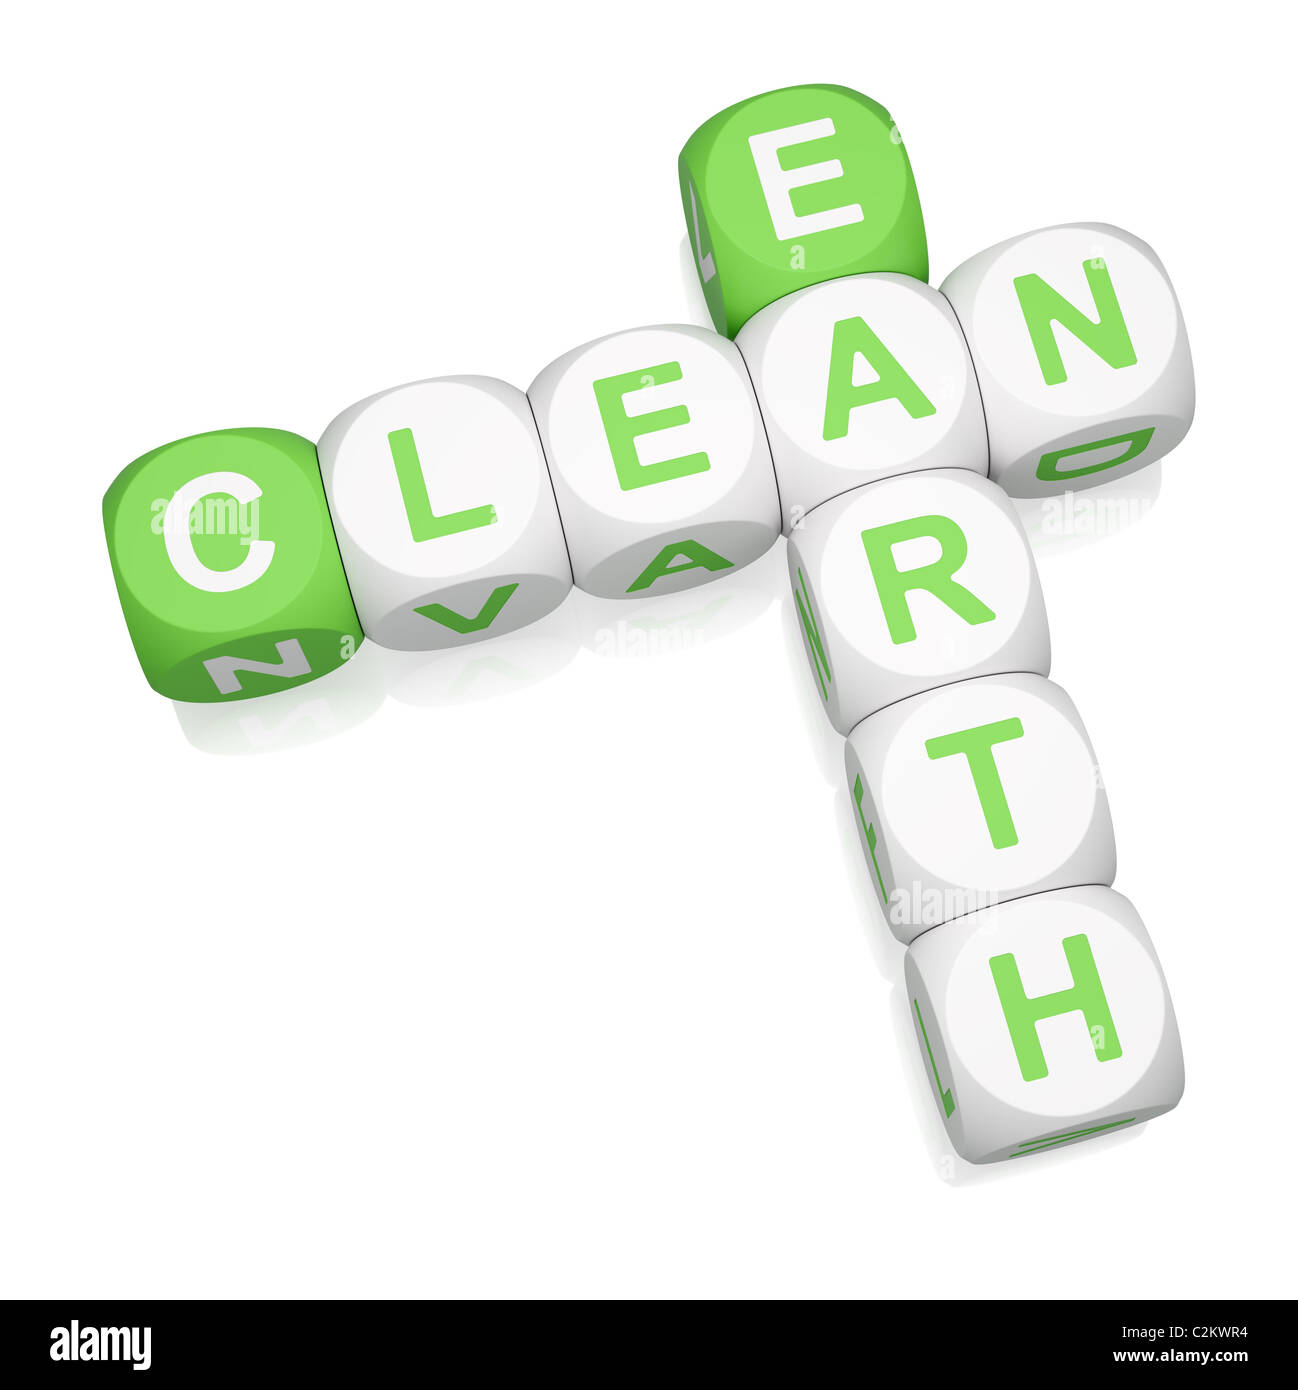 Clean Earth crossword on white background - Stock Image